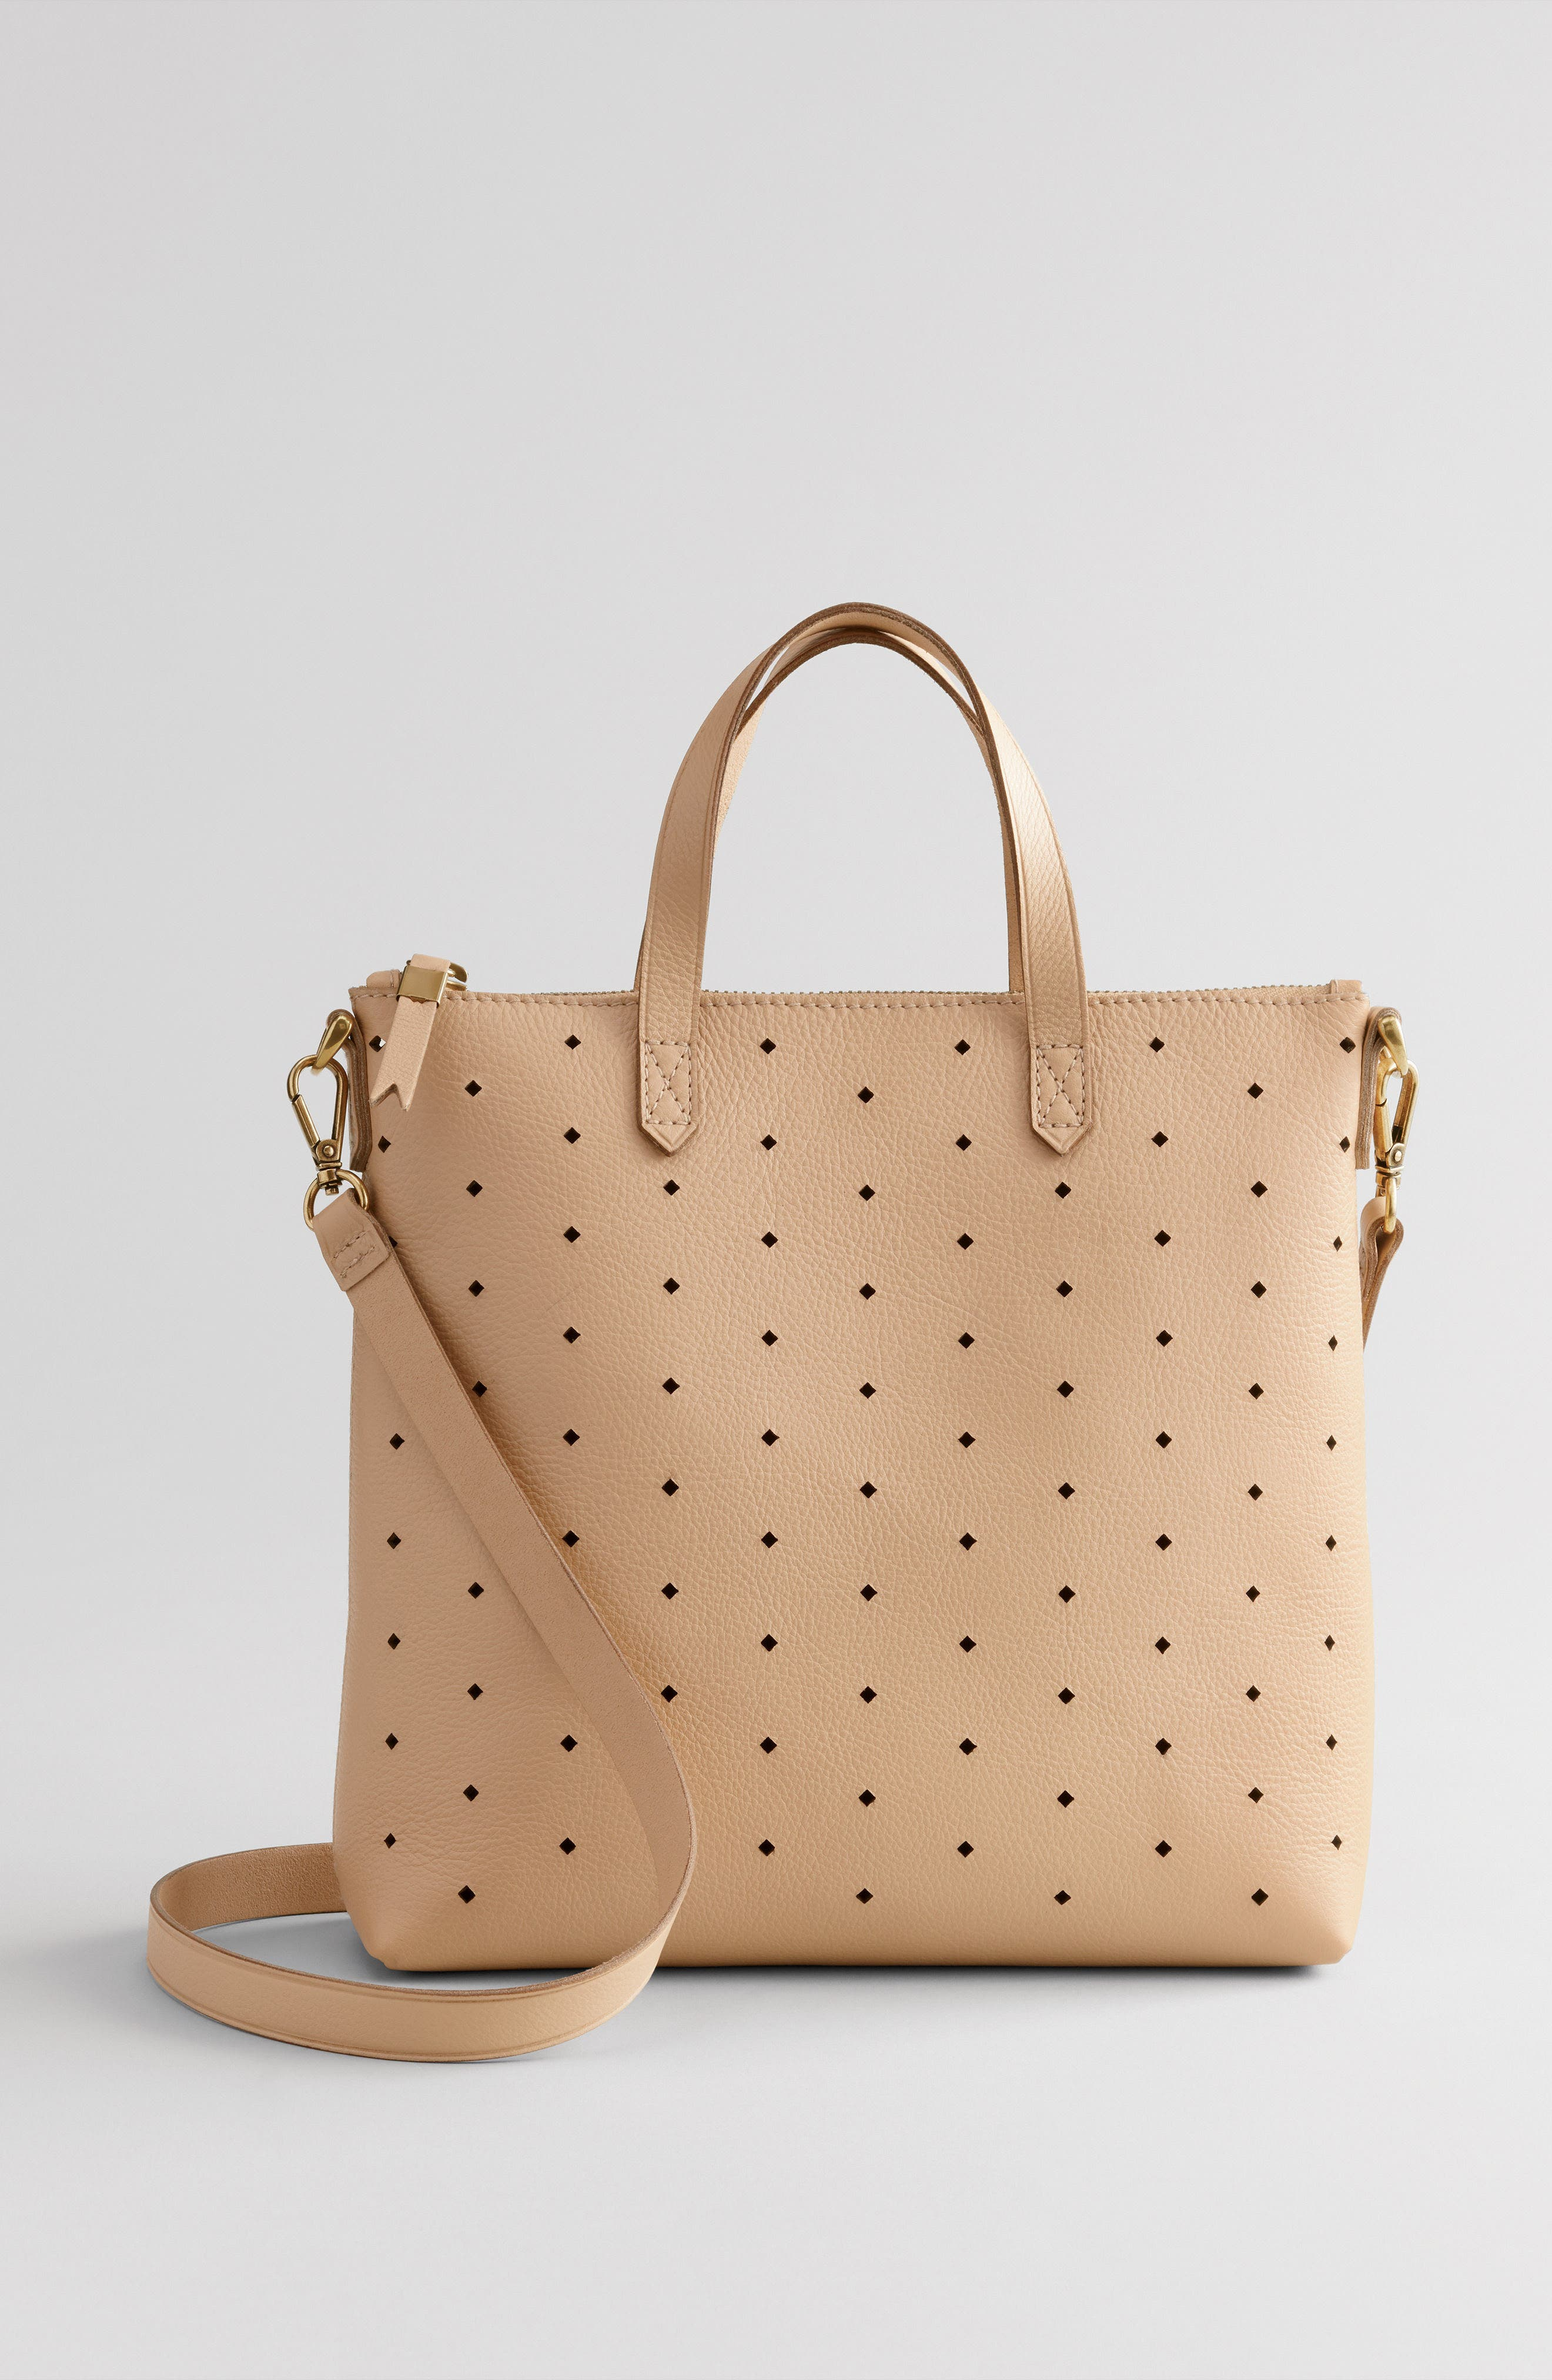 MADEWELL,                             Mini Transport Perforated Leather Crossbody Bag,                             Alternate thumbnail 7, color,                             250